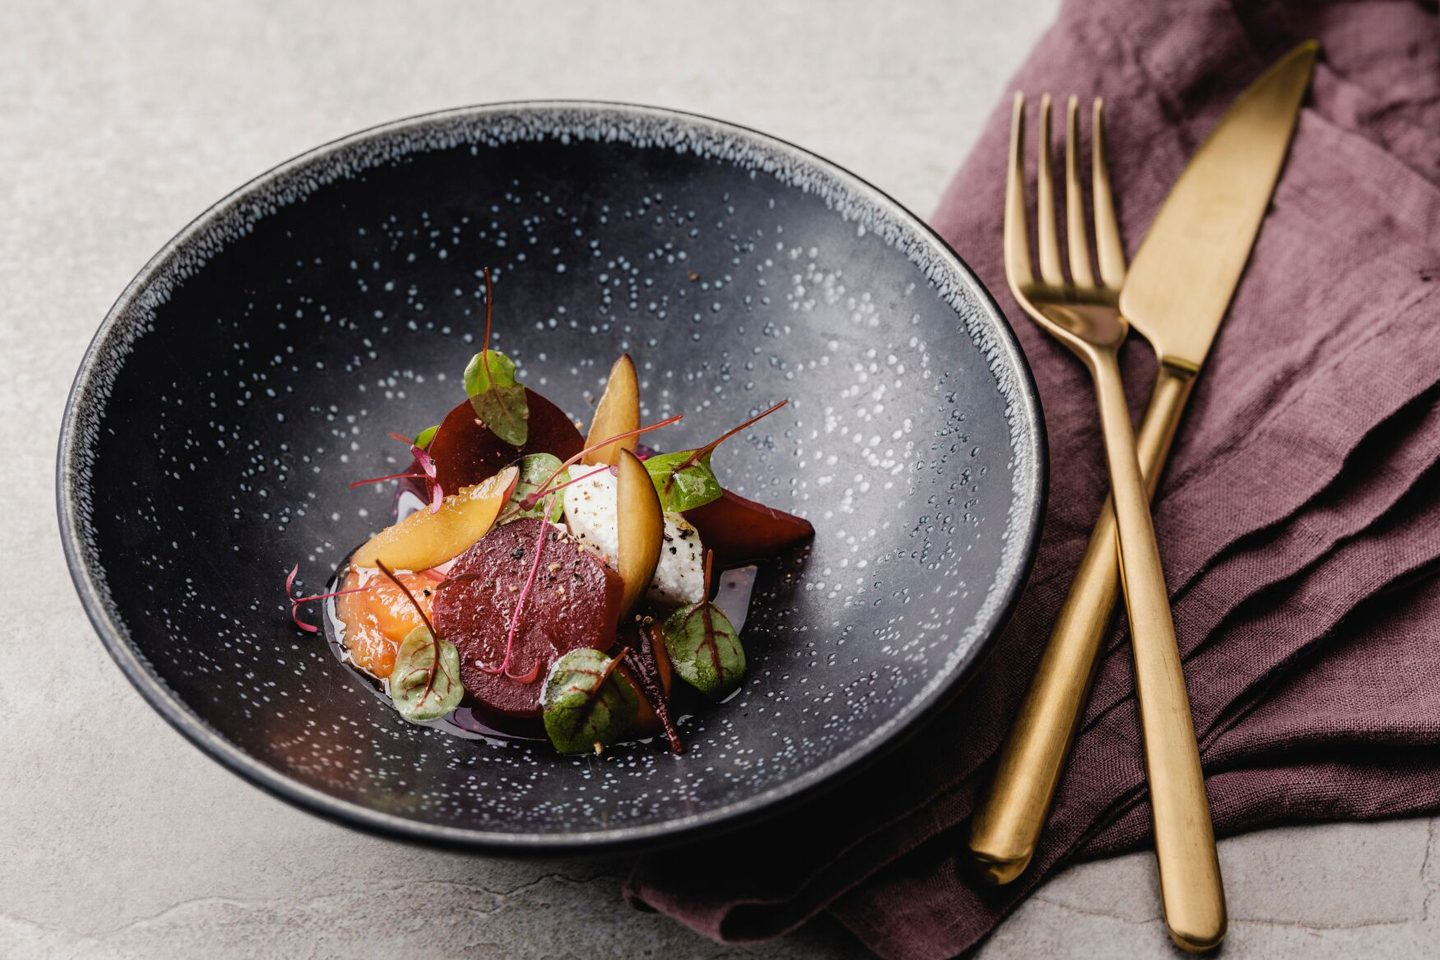 Lukewarm beets with caramelized plums and fresh goat's cheese in a black deep plate with gold cutlery